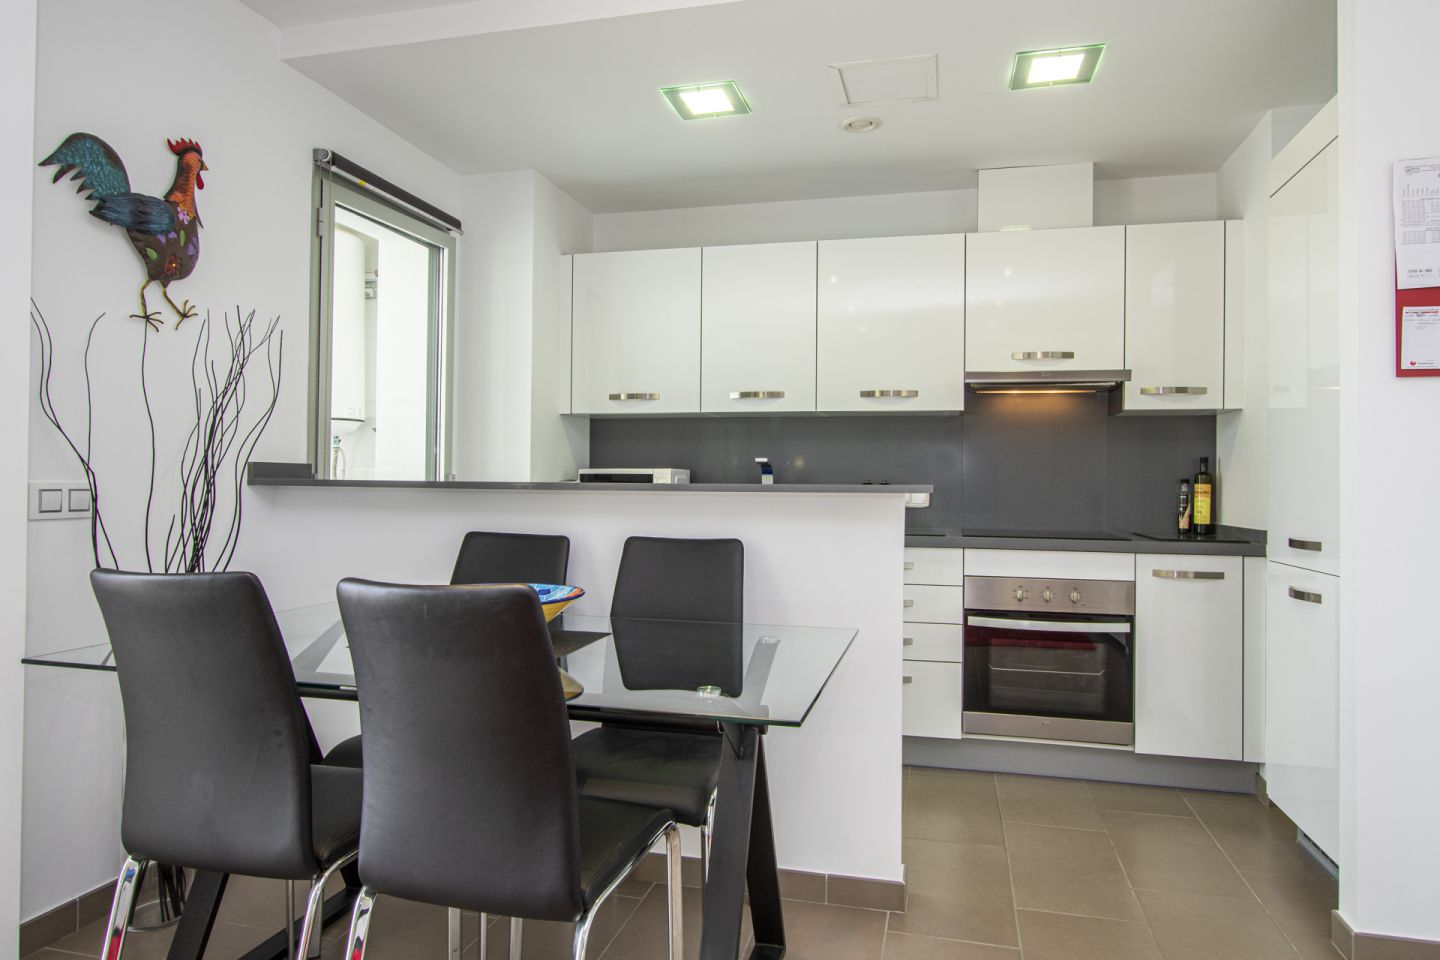 3 Bed Apartment for sale in Puerto Pollensa 6